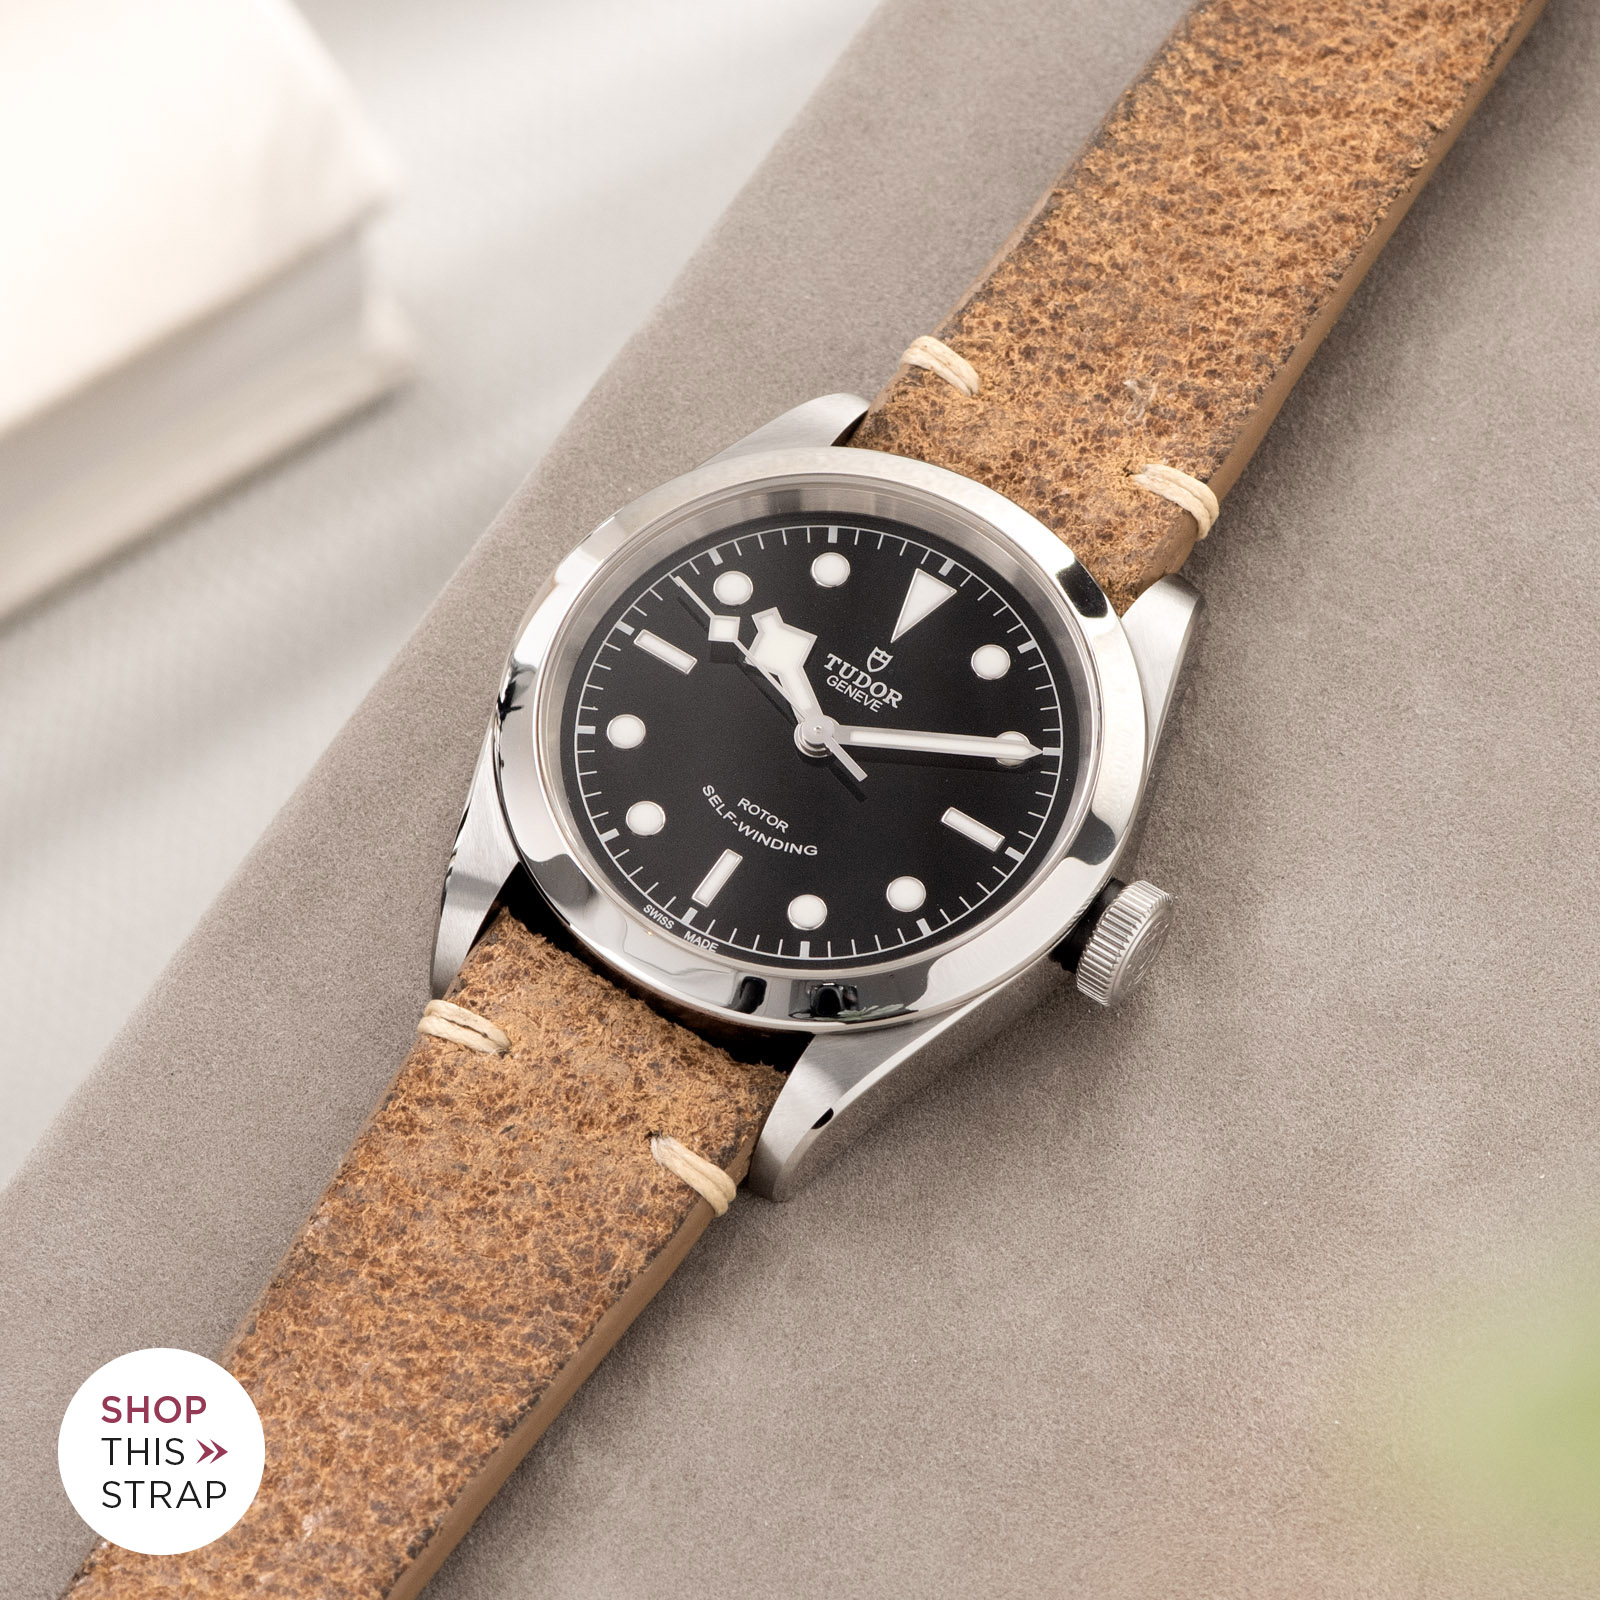 Bulang and Sons_Strap Guide_Tudor Heritage BlackBay 411_Crackle Brown Leather Watch Strap